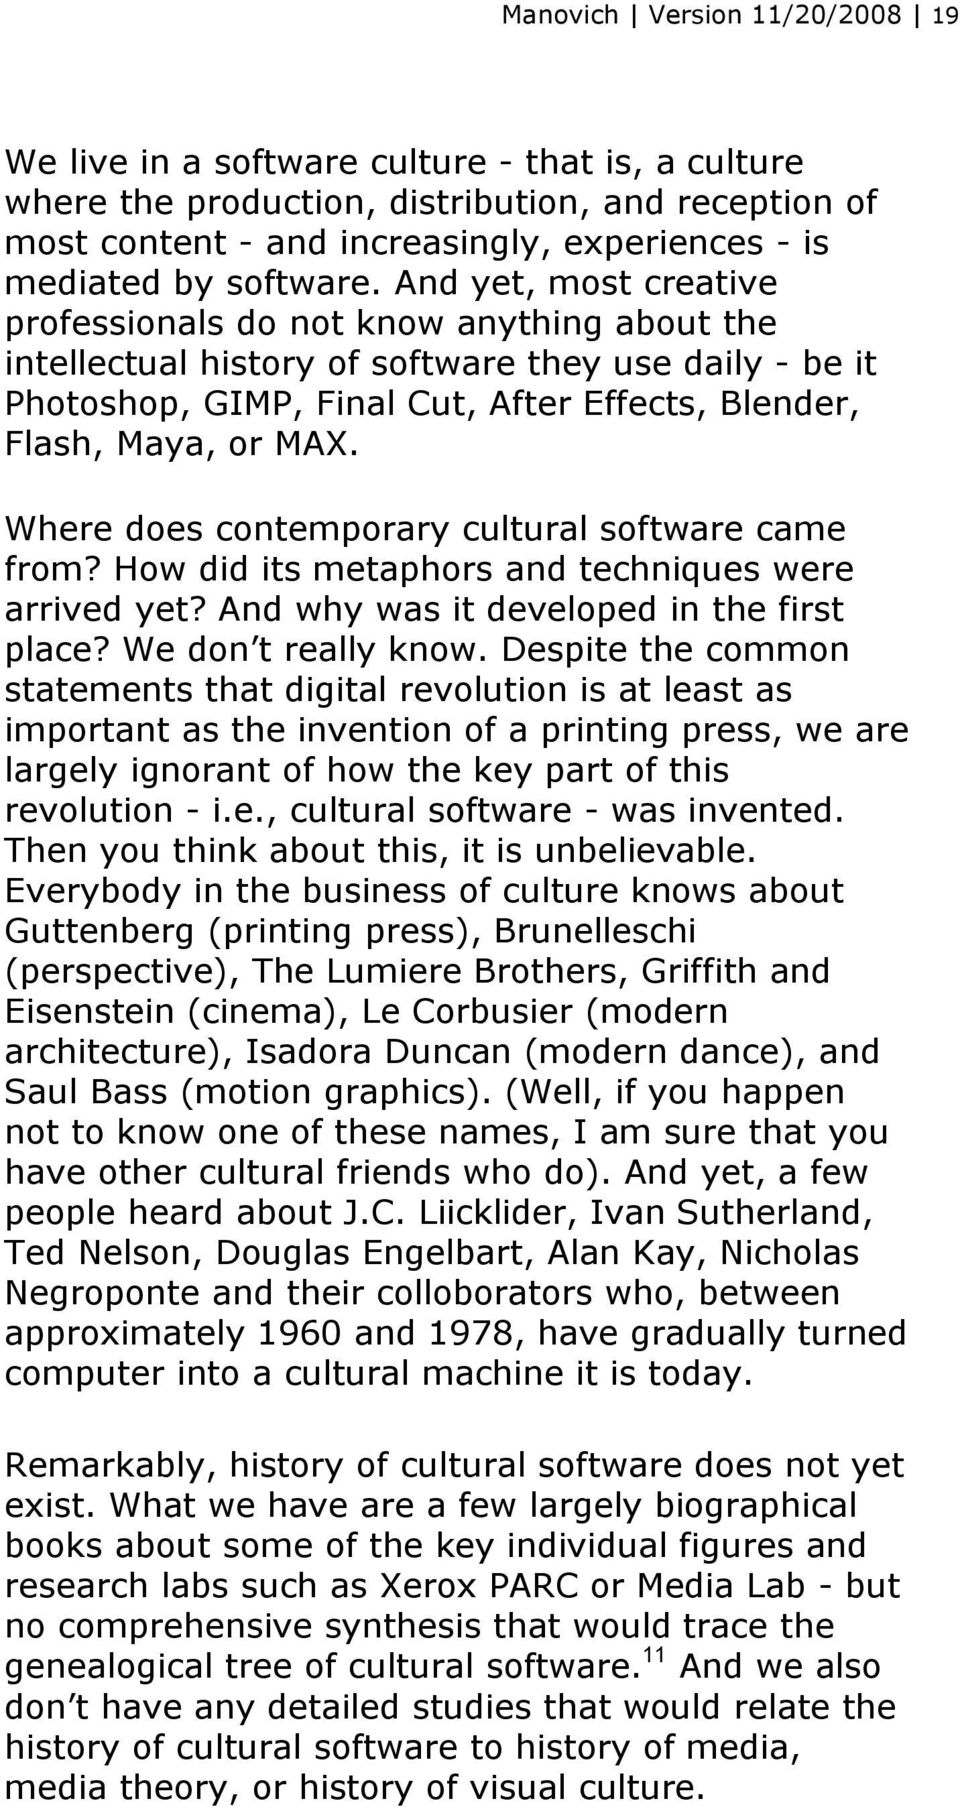 And yet, most creative professionals do not know anything about the intellectual history of software they use daily - be it Photoshop, GIMP, Final Cut, After Effects, Blender, Flash, Maya, or MAX.